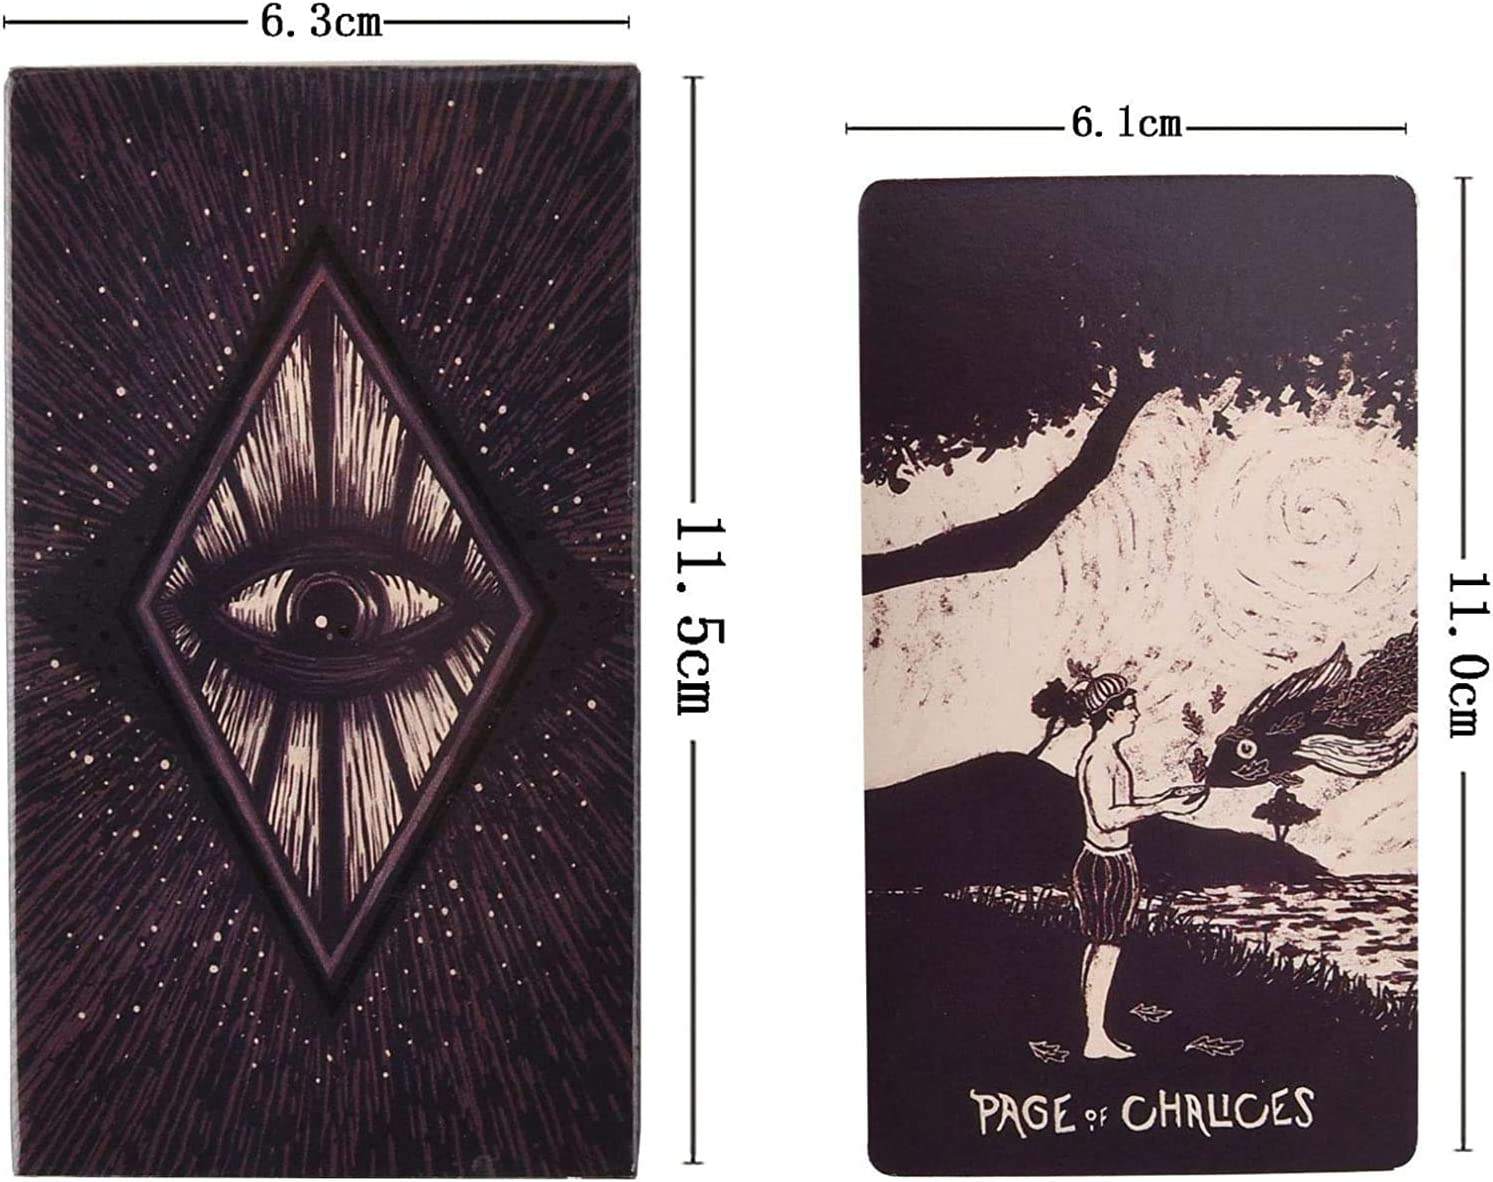 Jjwwhh Hot New Tarot Cards Permanent Destiny Divination Tarot Cards 78 Pieces Light Visions Tarot Cards with Beautiful Paintings for Family Party and Entertainment